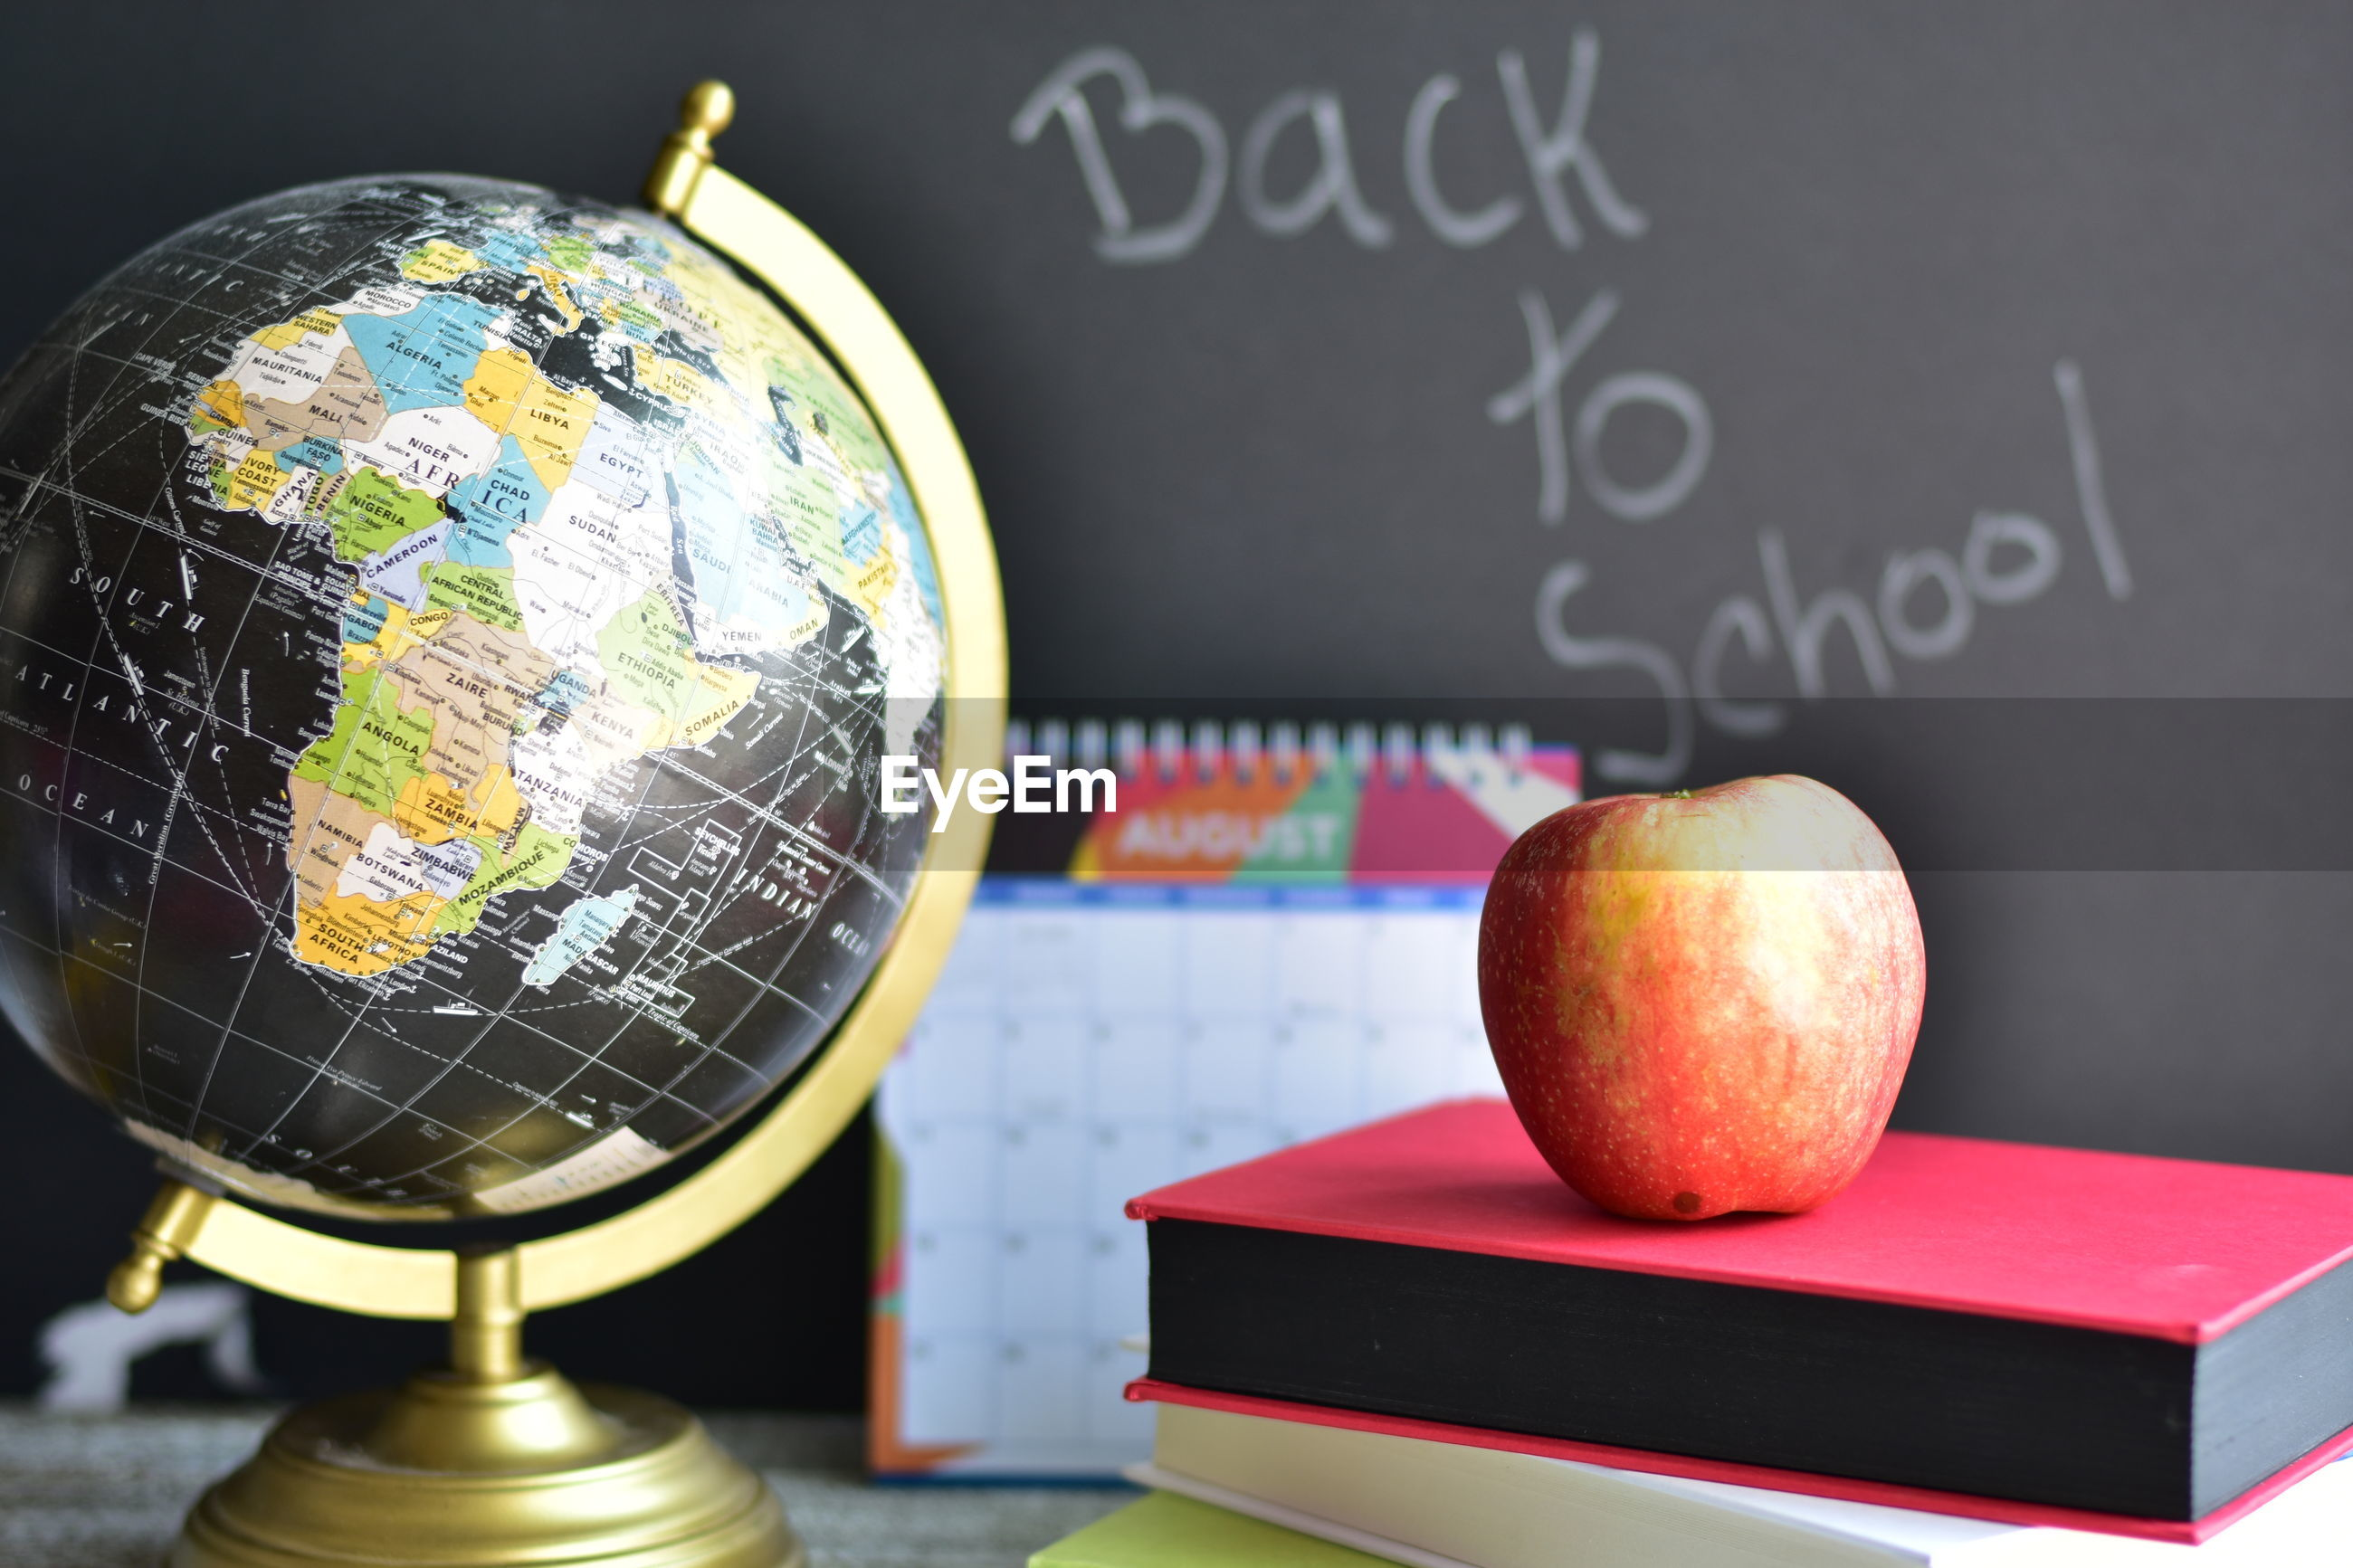 Close-up of apple over books by globe on table with text on blackboard in background